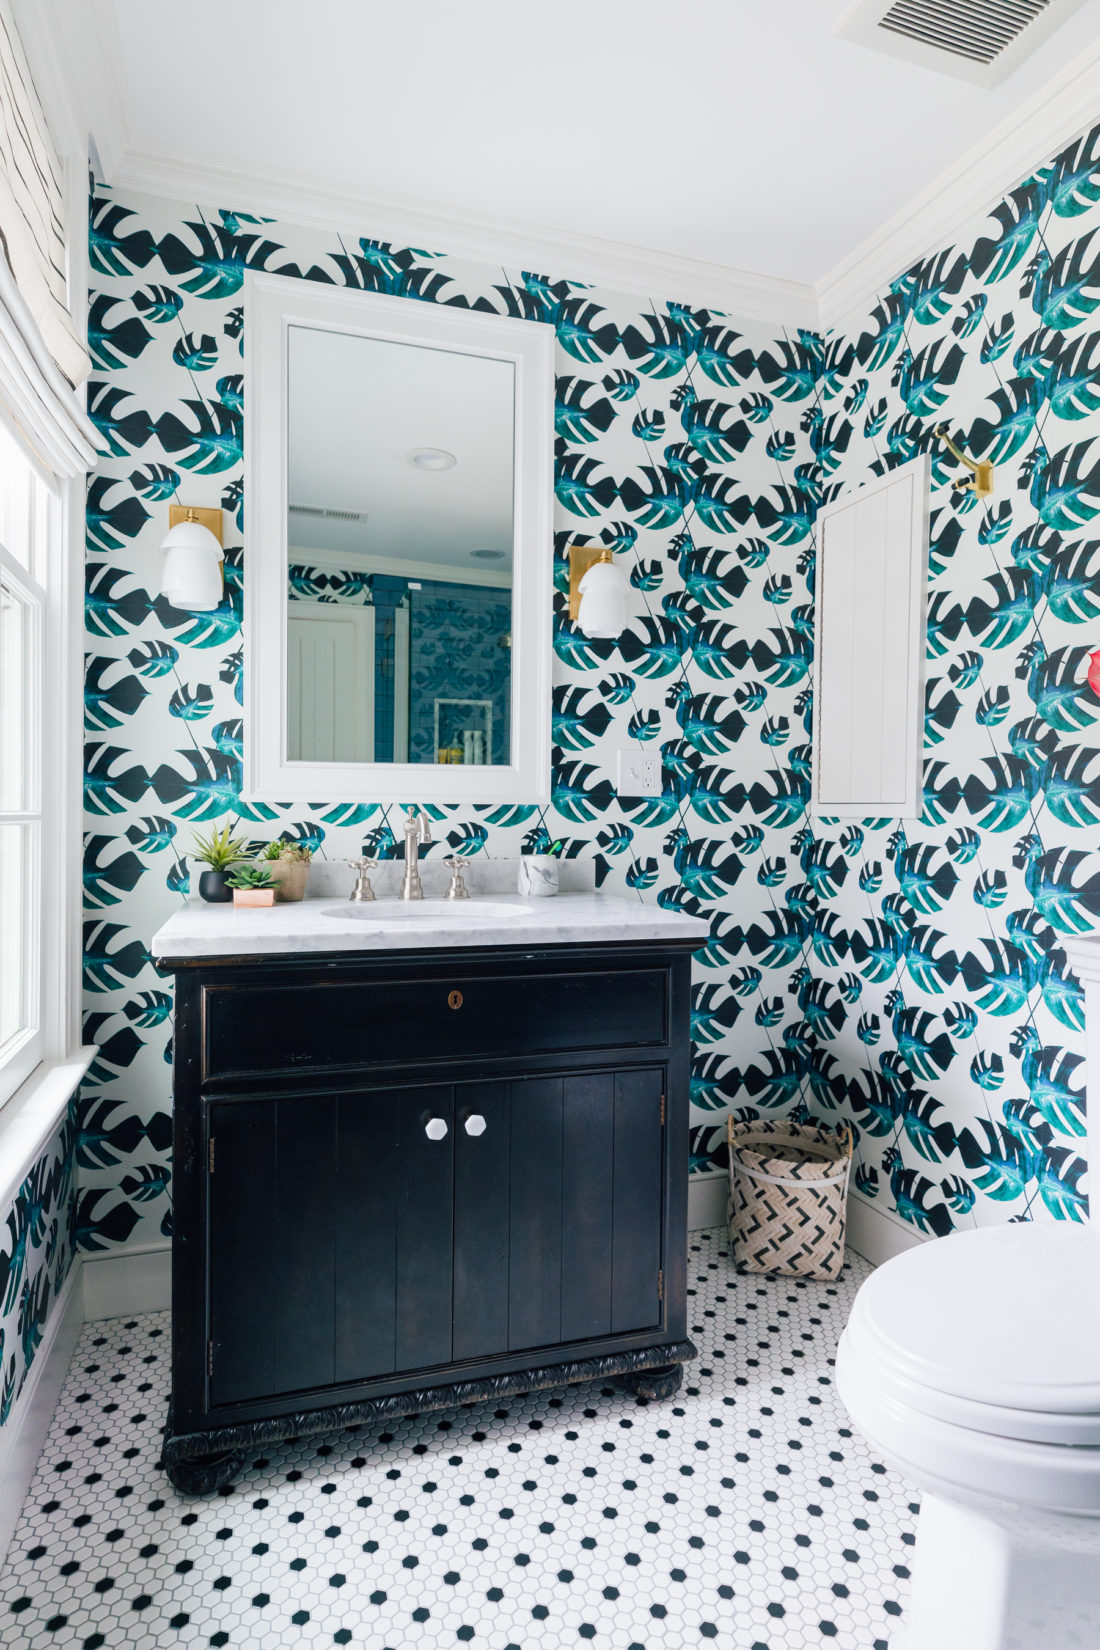 Eva Amurri Martino's son Major's Bathroom Reveal in their renovated Westport home